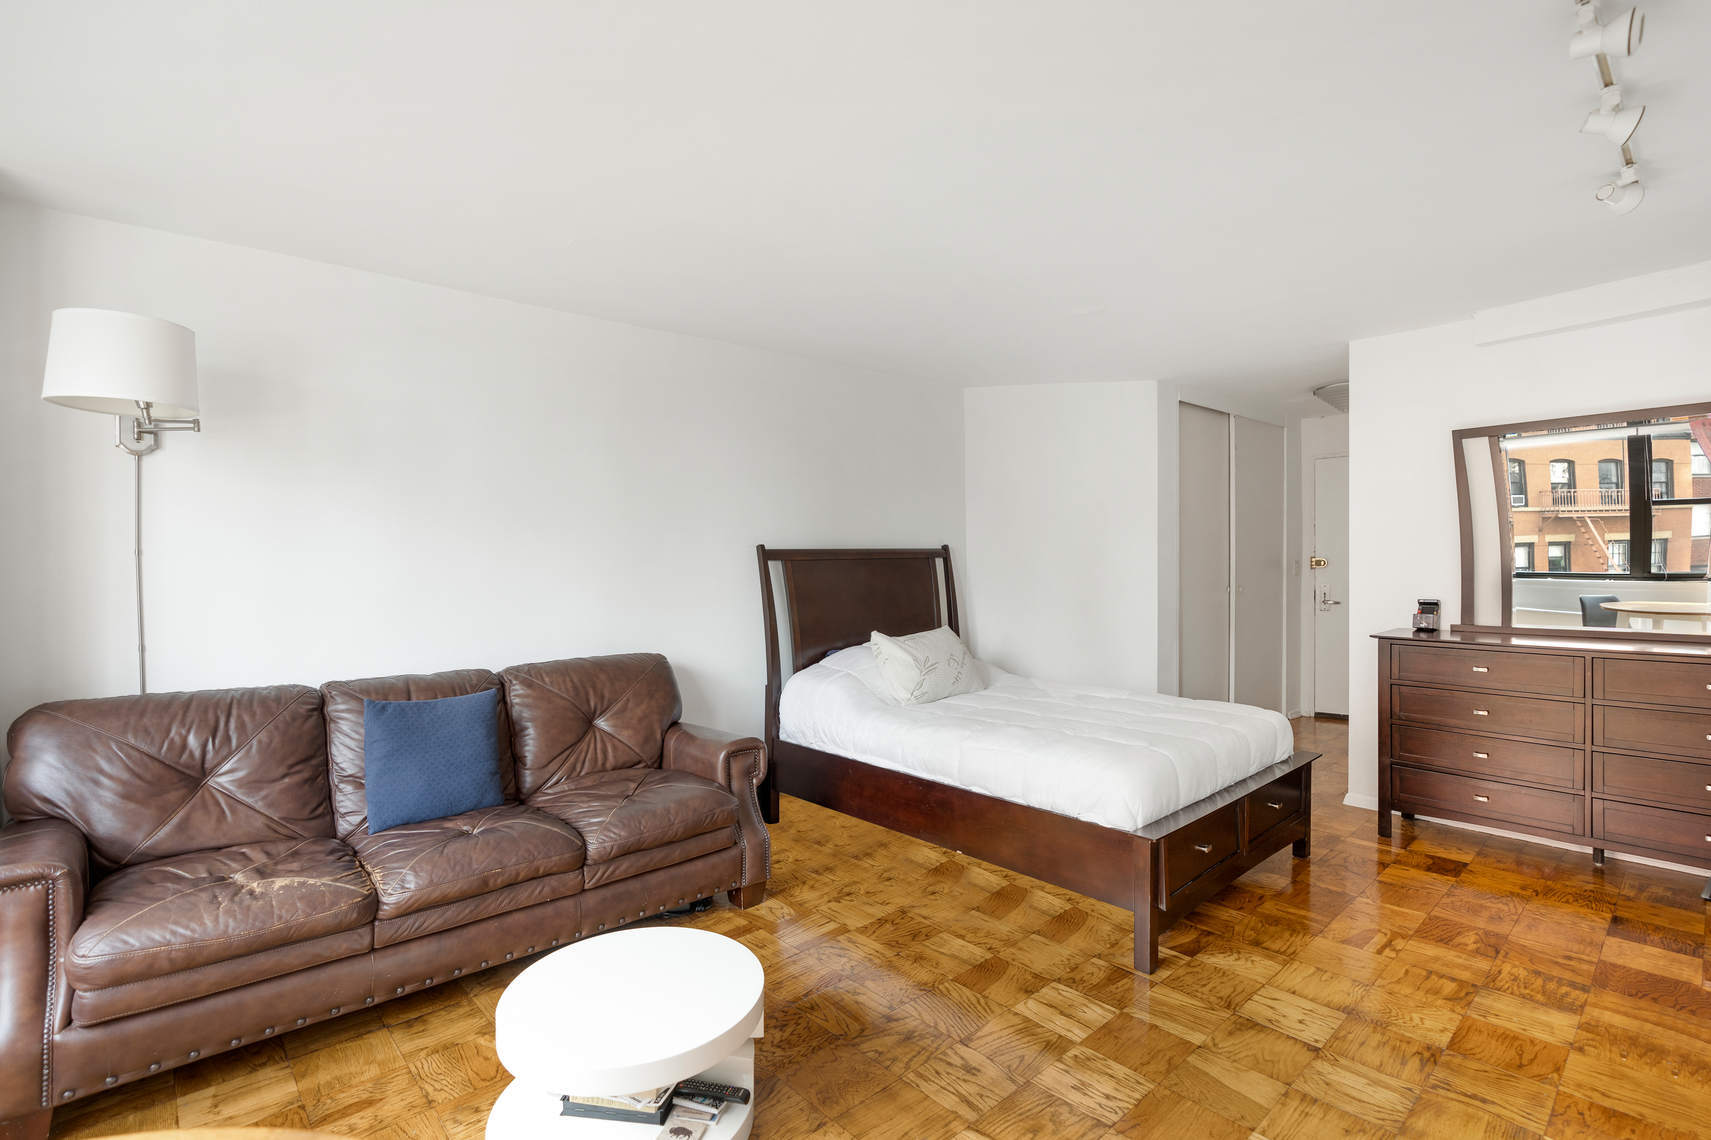 Apartment for sale at 225 East 36th Street, Apt 5-L